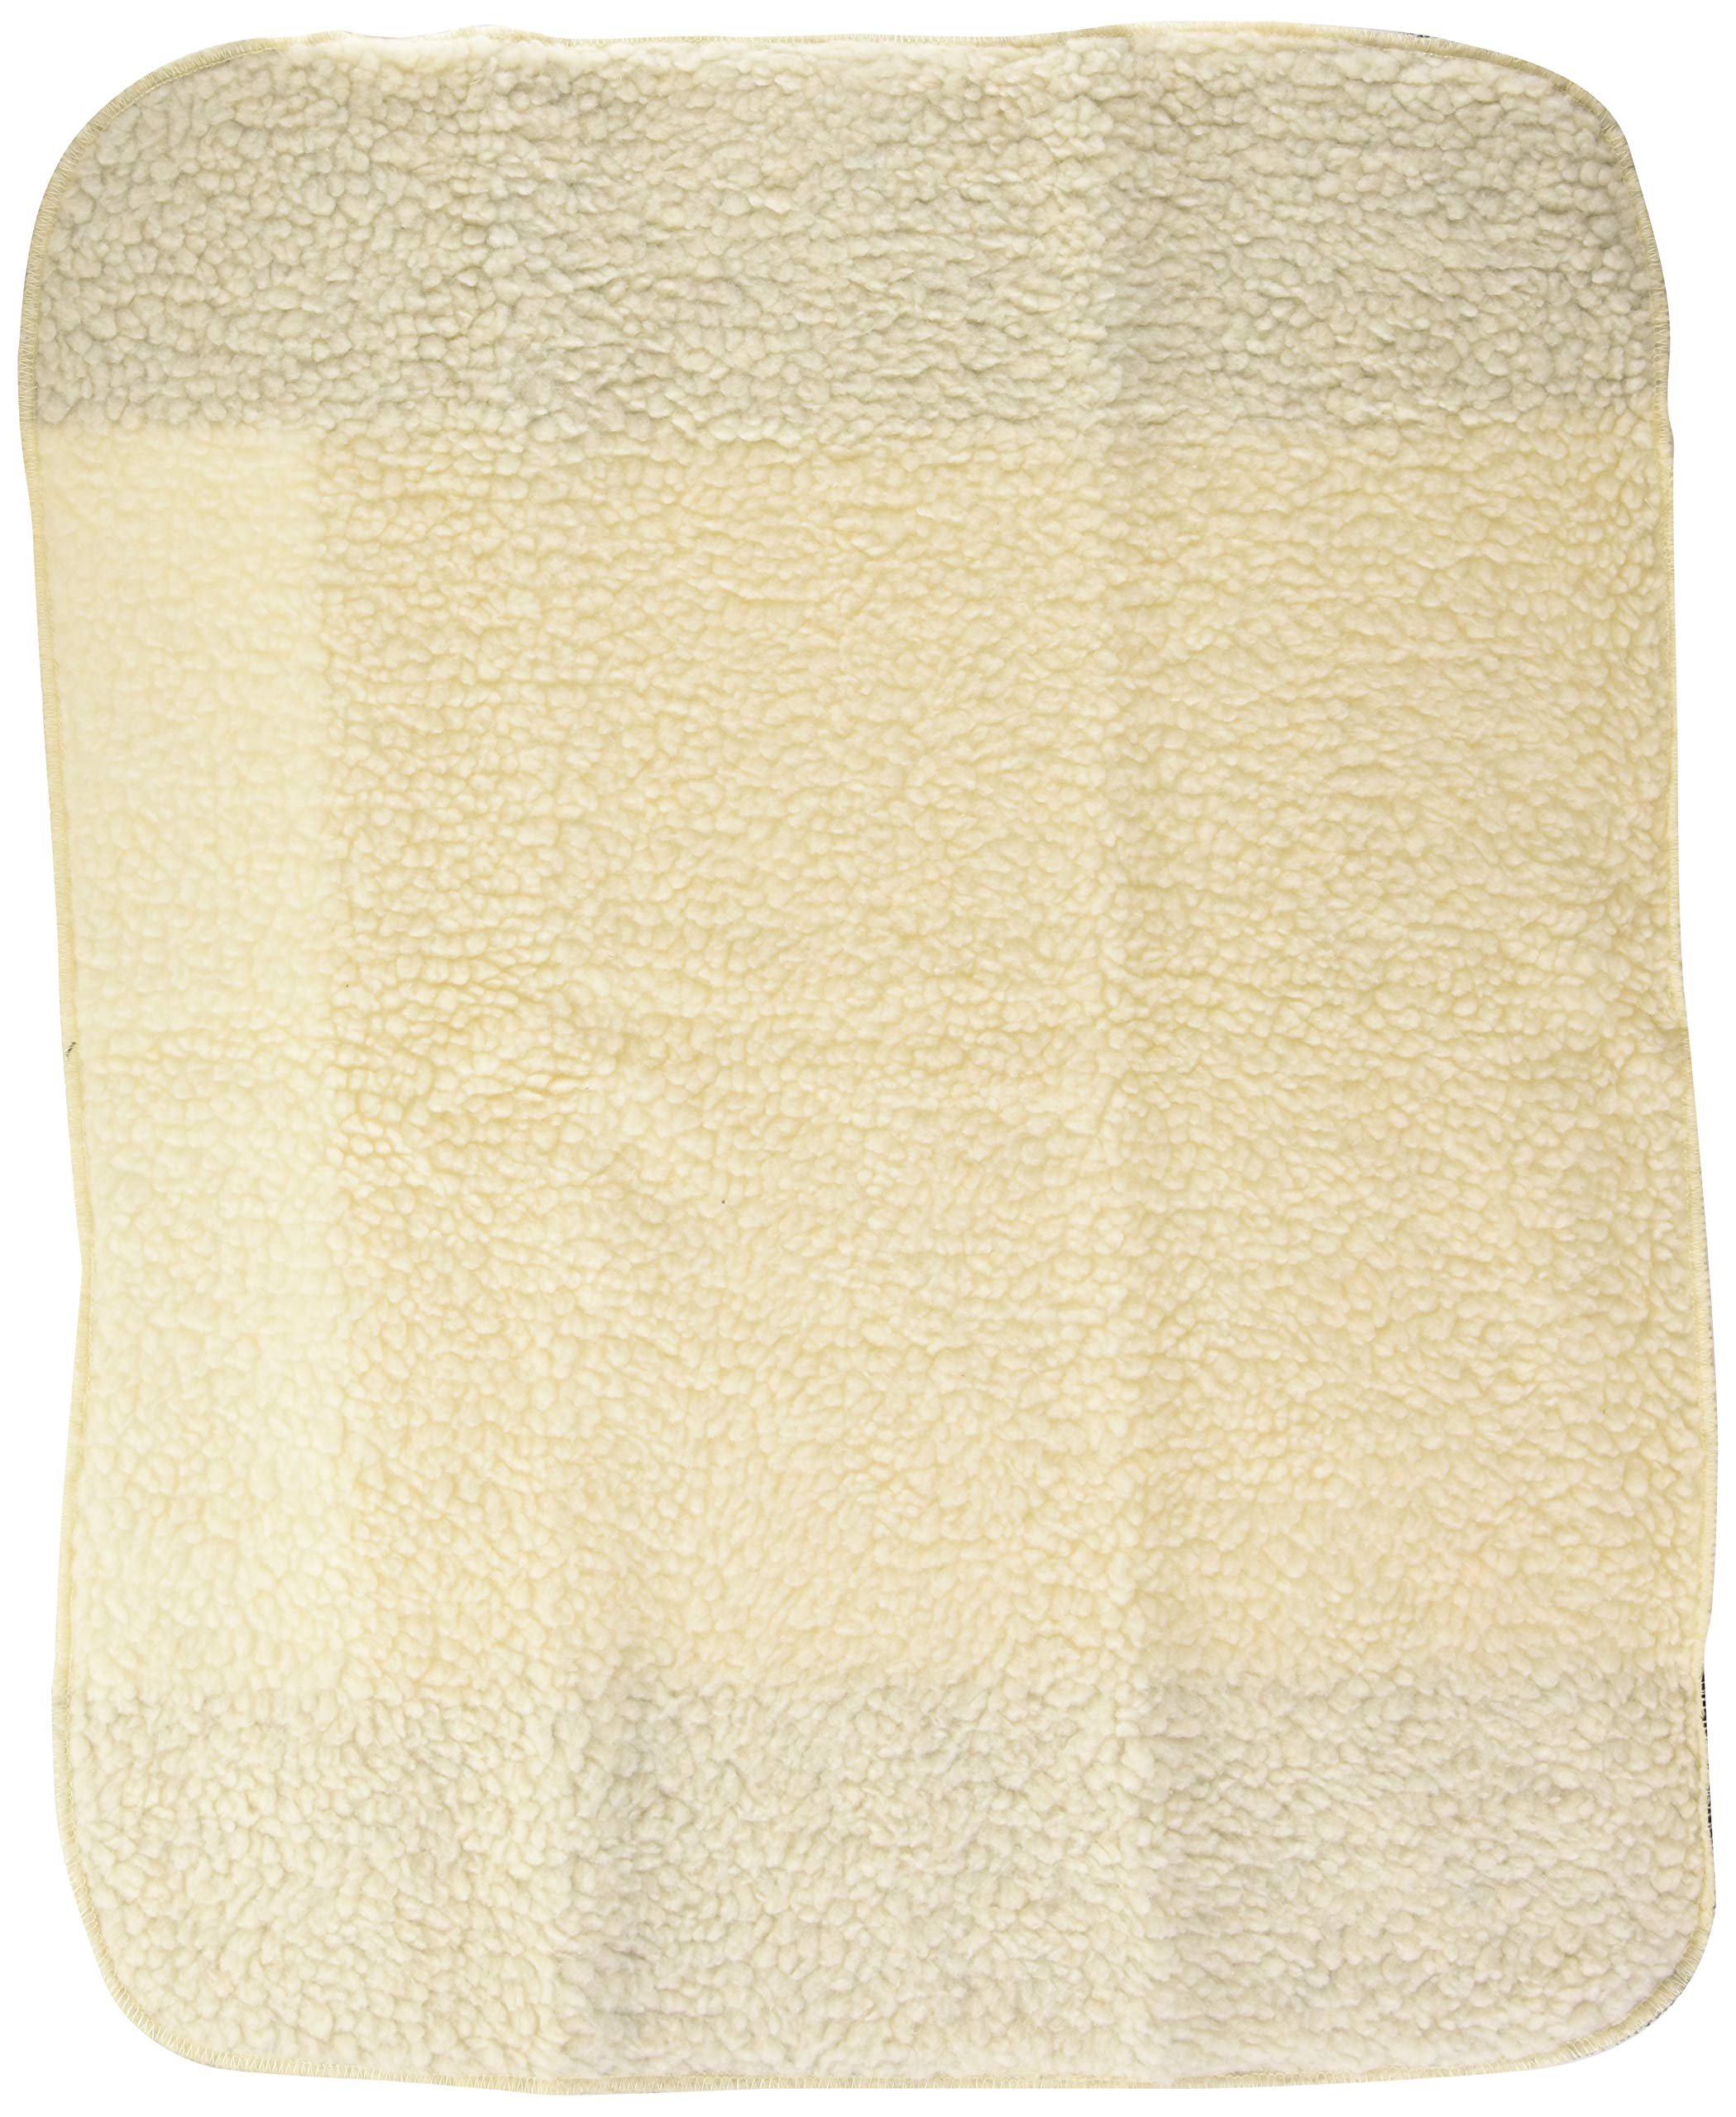 K&H Pet Products Lectro-Soft Replacement Cover Medium Fleece 19'' x 24'' (Heated Pad Not Included)